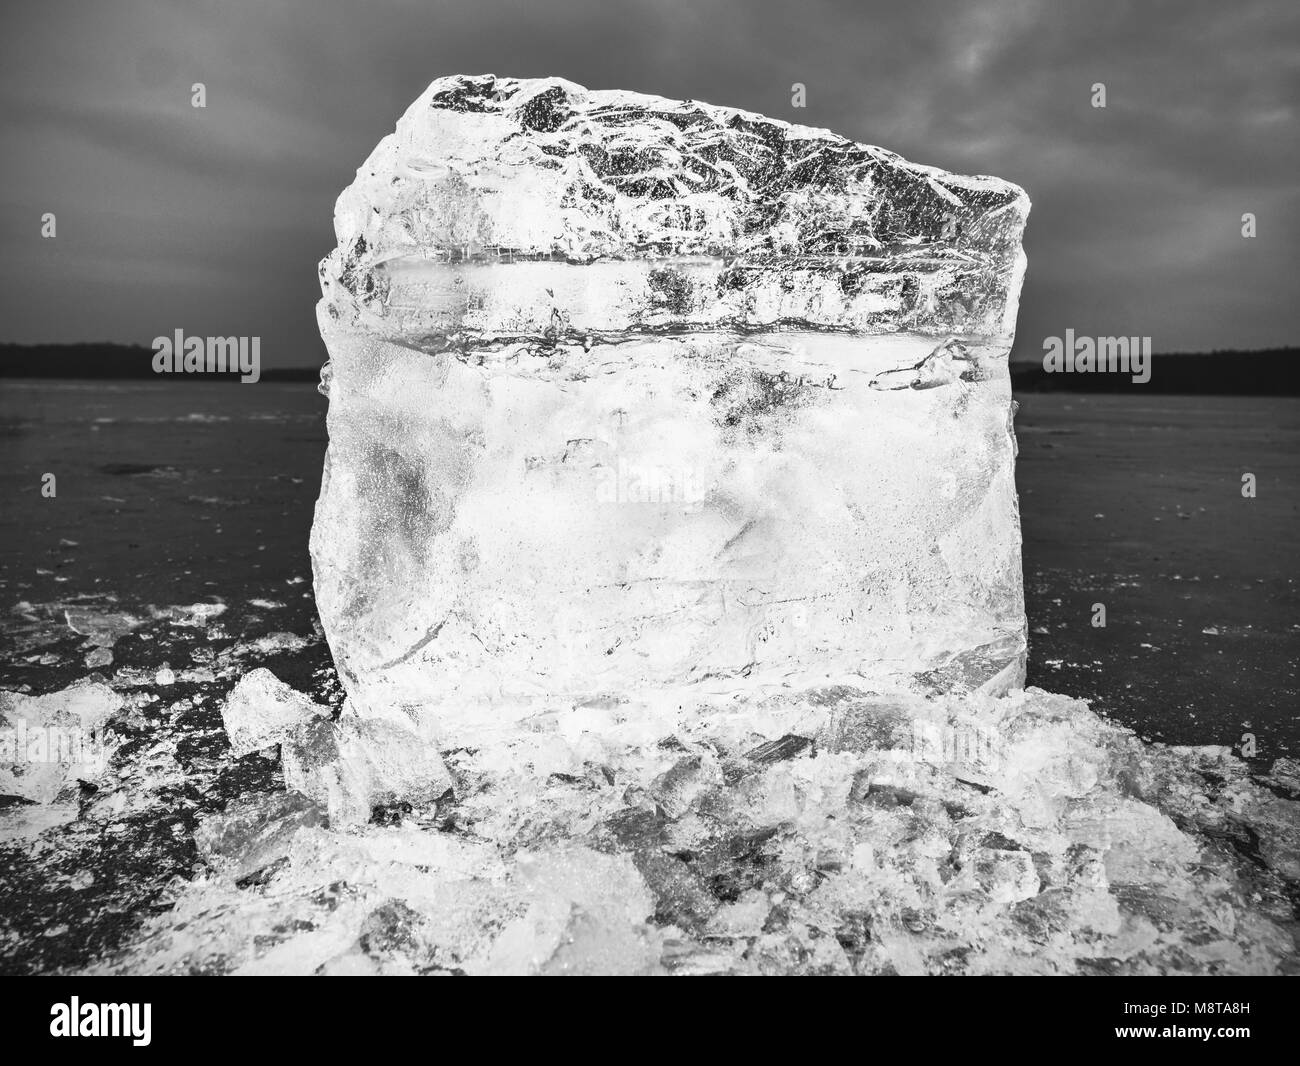 Natural ice blocks. Ice floe breaking due to strong wind against the shore and move. Freezing winter weather. - Stock Image